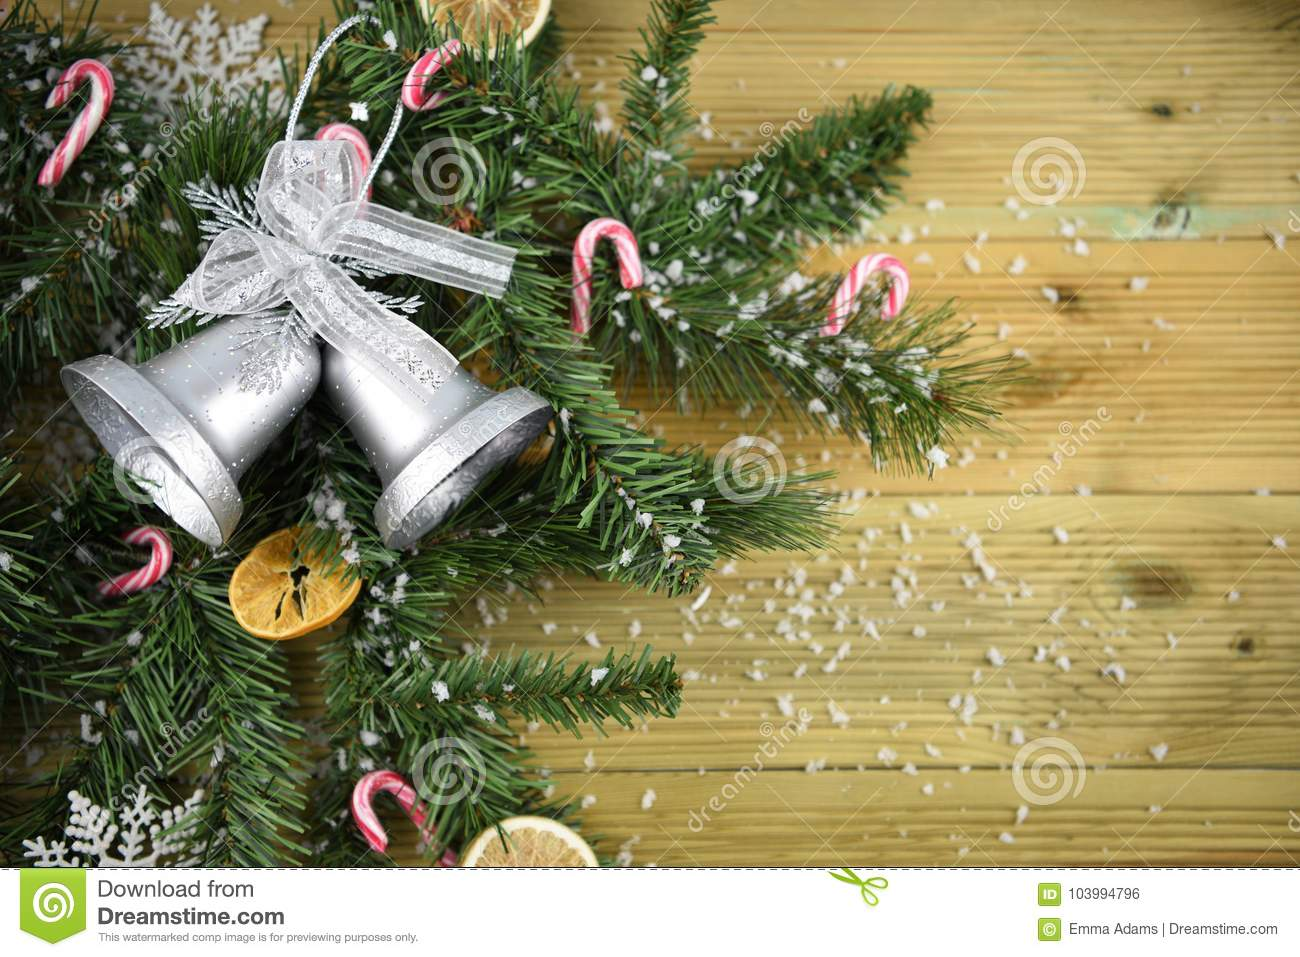 Christmas Photography Picture With Tree Branches And Silver Color Bell Decoration Candy Canes And Fruit All Sprinkled With Snow Stock Photo Image Of Color Natural 103994796